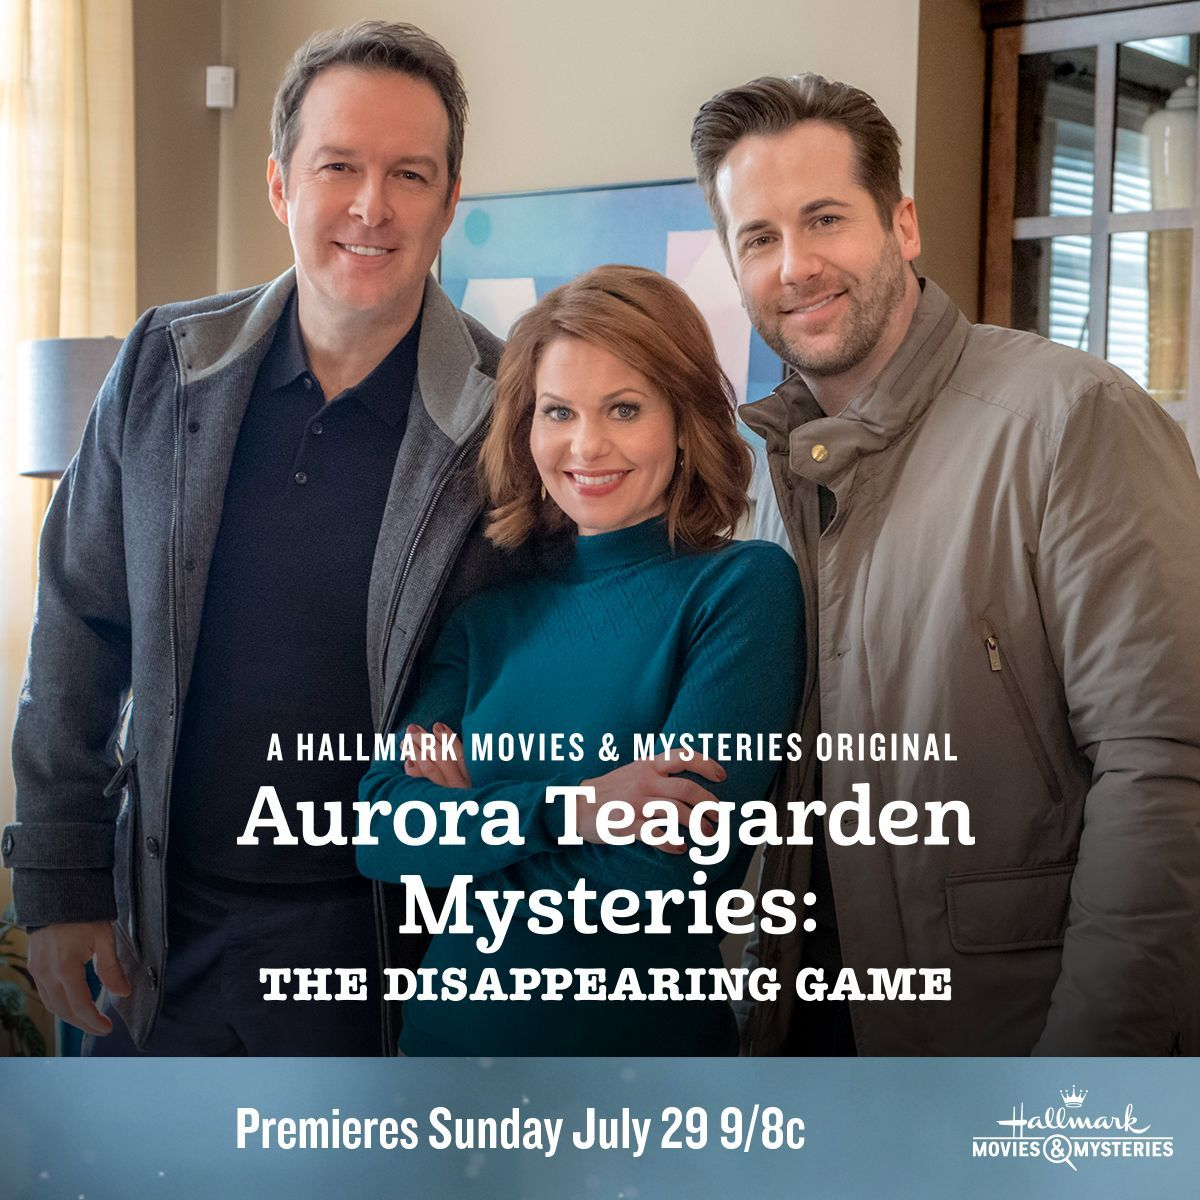 new morning show aurora teagarden mystery movies on hallmark movies mysteries channel. Black Bedroom Furniture Sets. Home Design Ideas